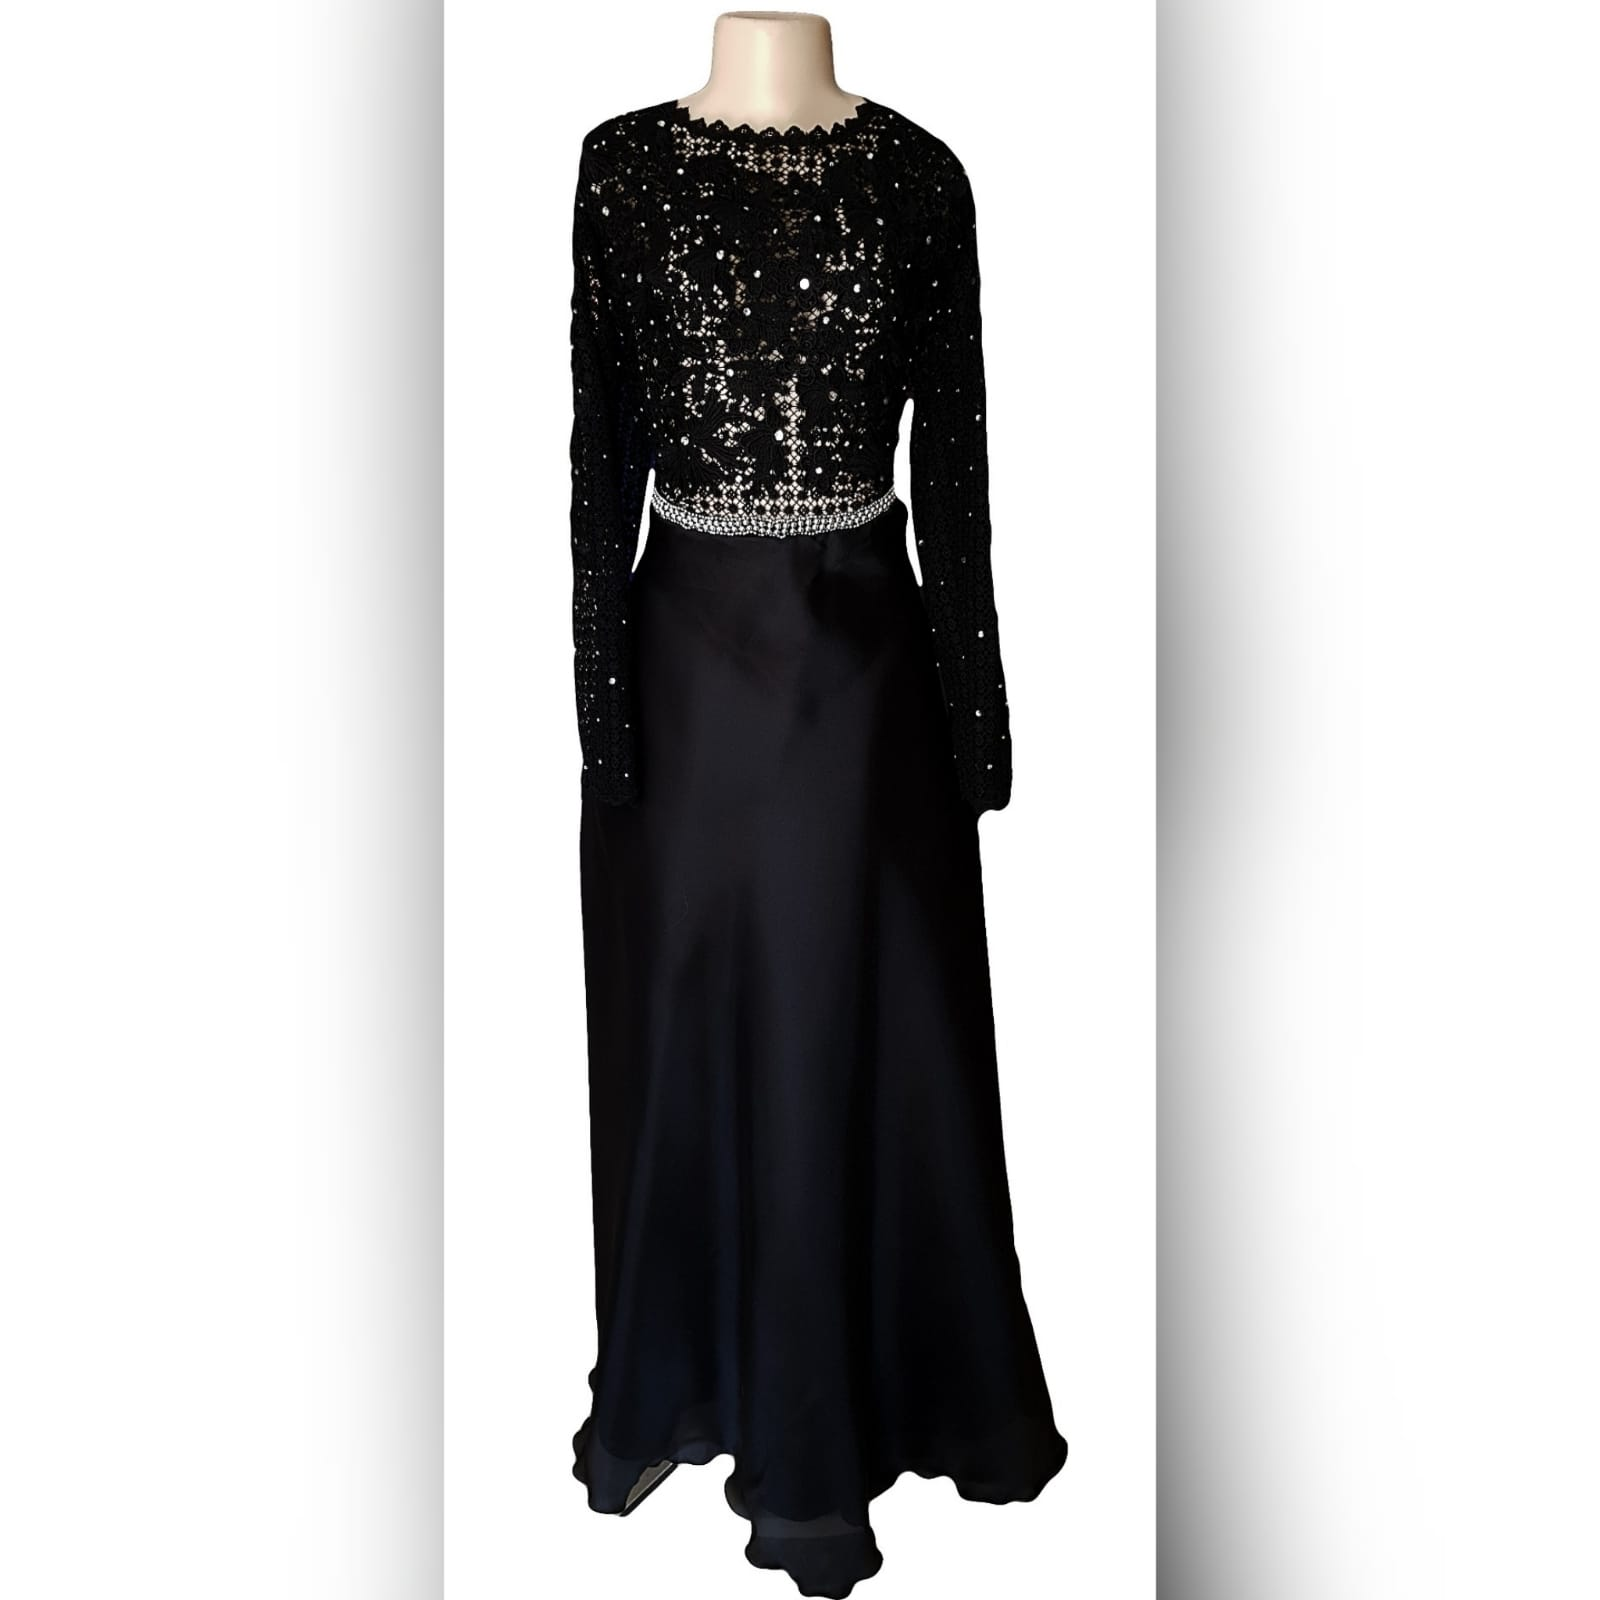 Black prom dress with a lace bodice 8 an elegant design created for a prom night. Black prom dress with a lace bodice with a slight sheer look detailed with silver beads and waist belt. Round neckline and long sleeves bottom flowy in a bridal organza